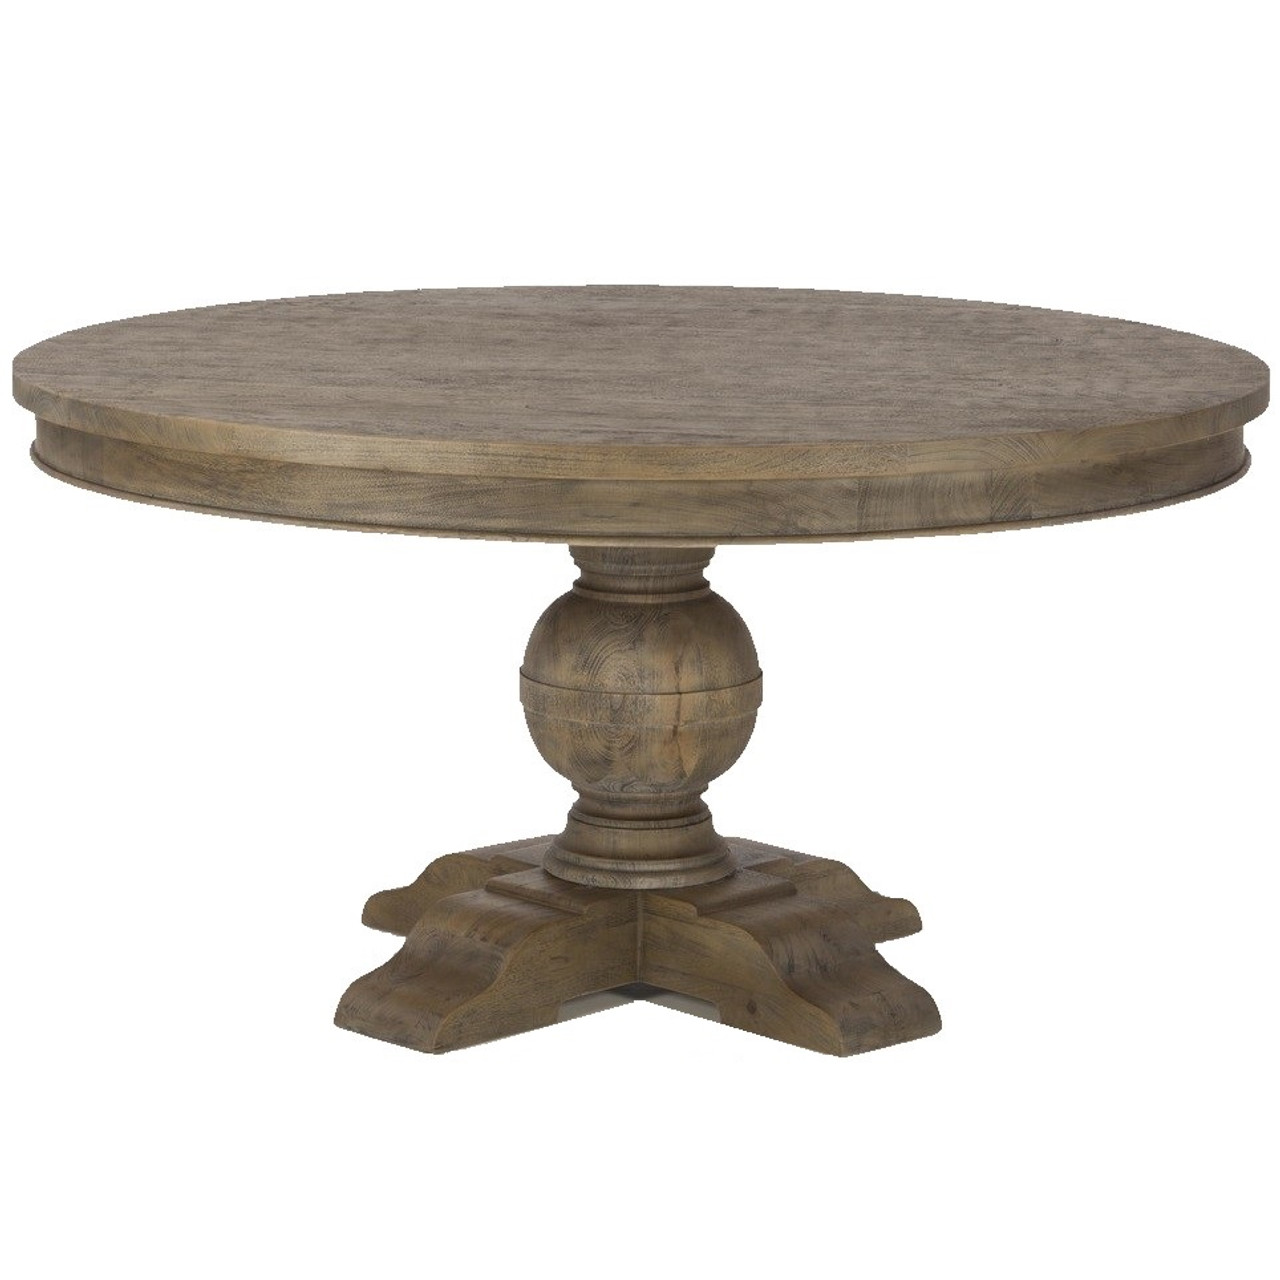 French Urn Solid Wood Pedestal Round Dining Table Zin Home - 48 round solid wood dining table